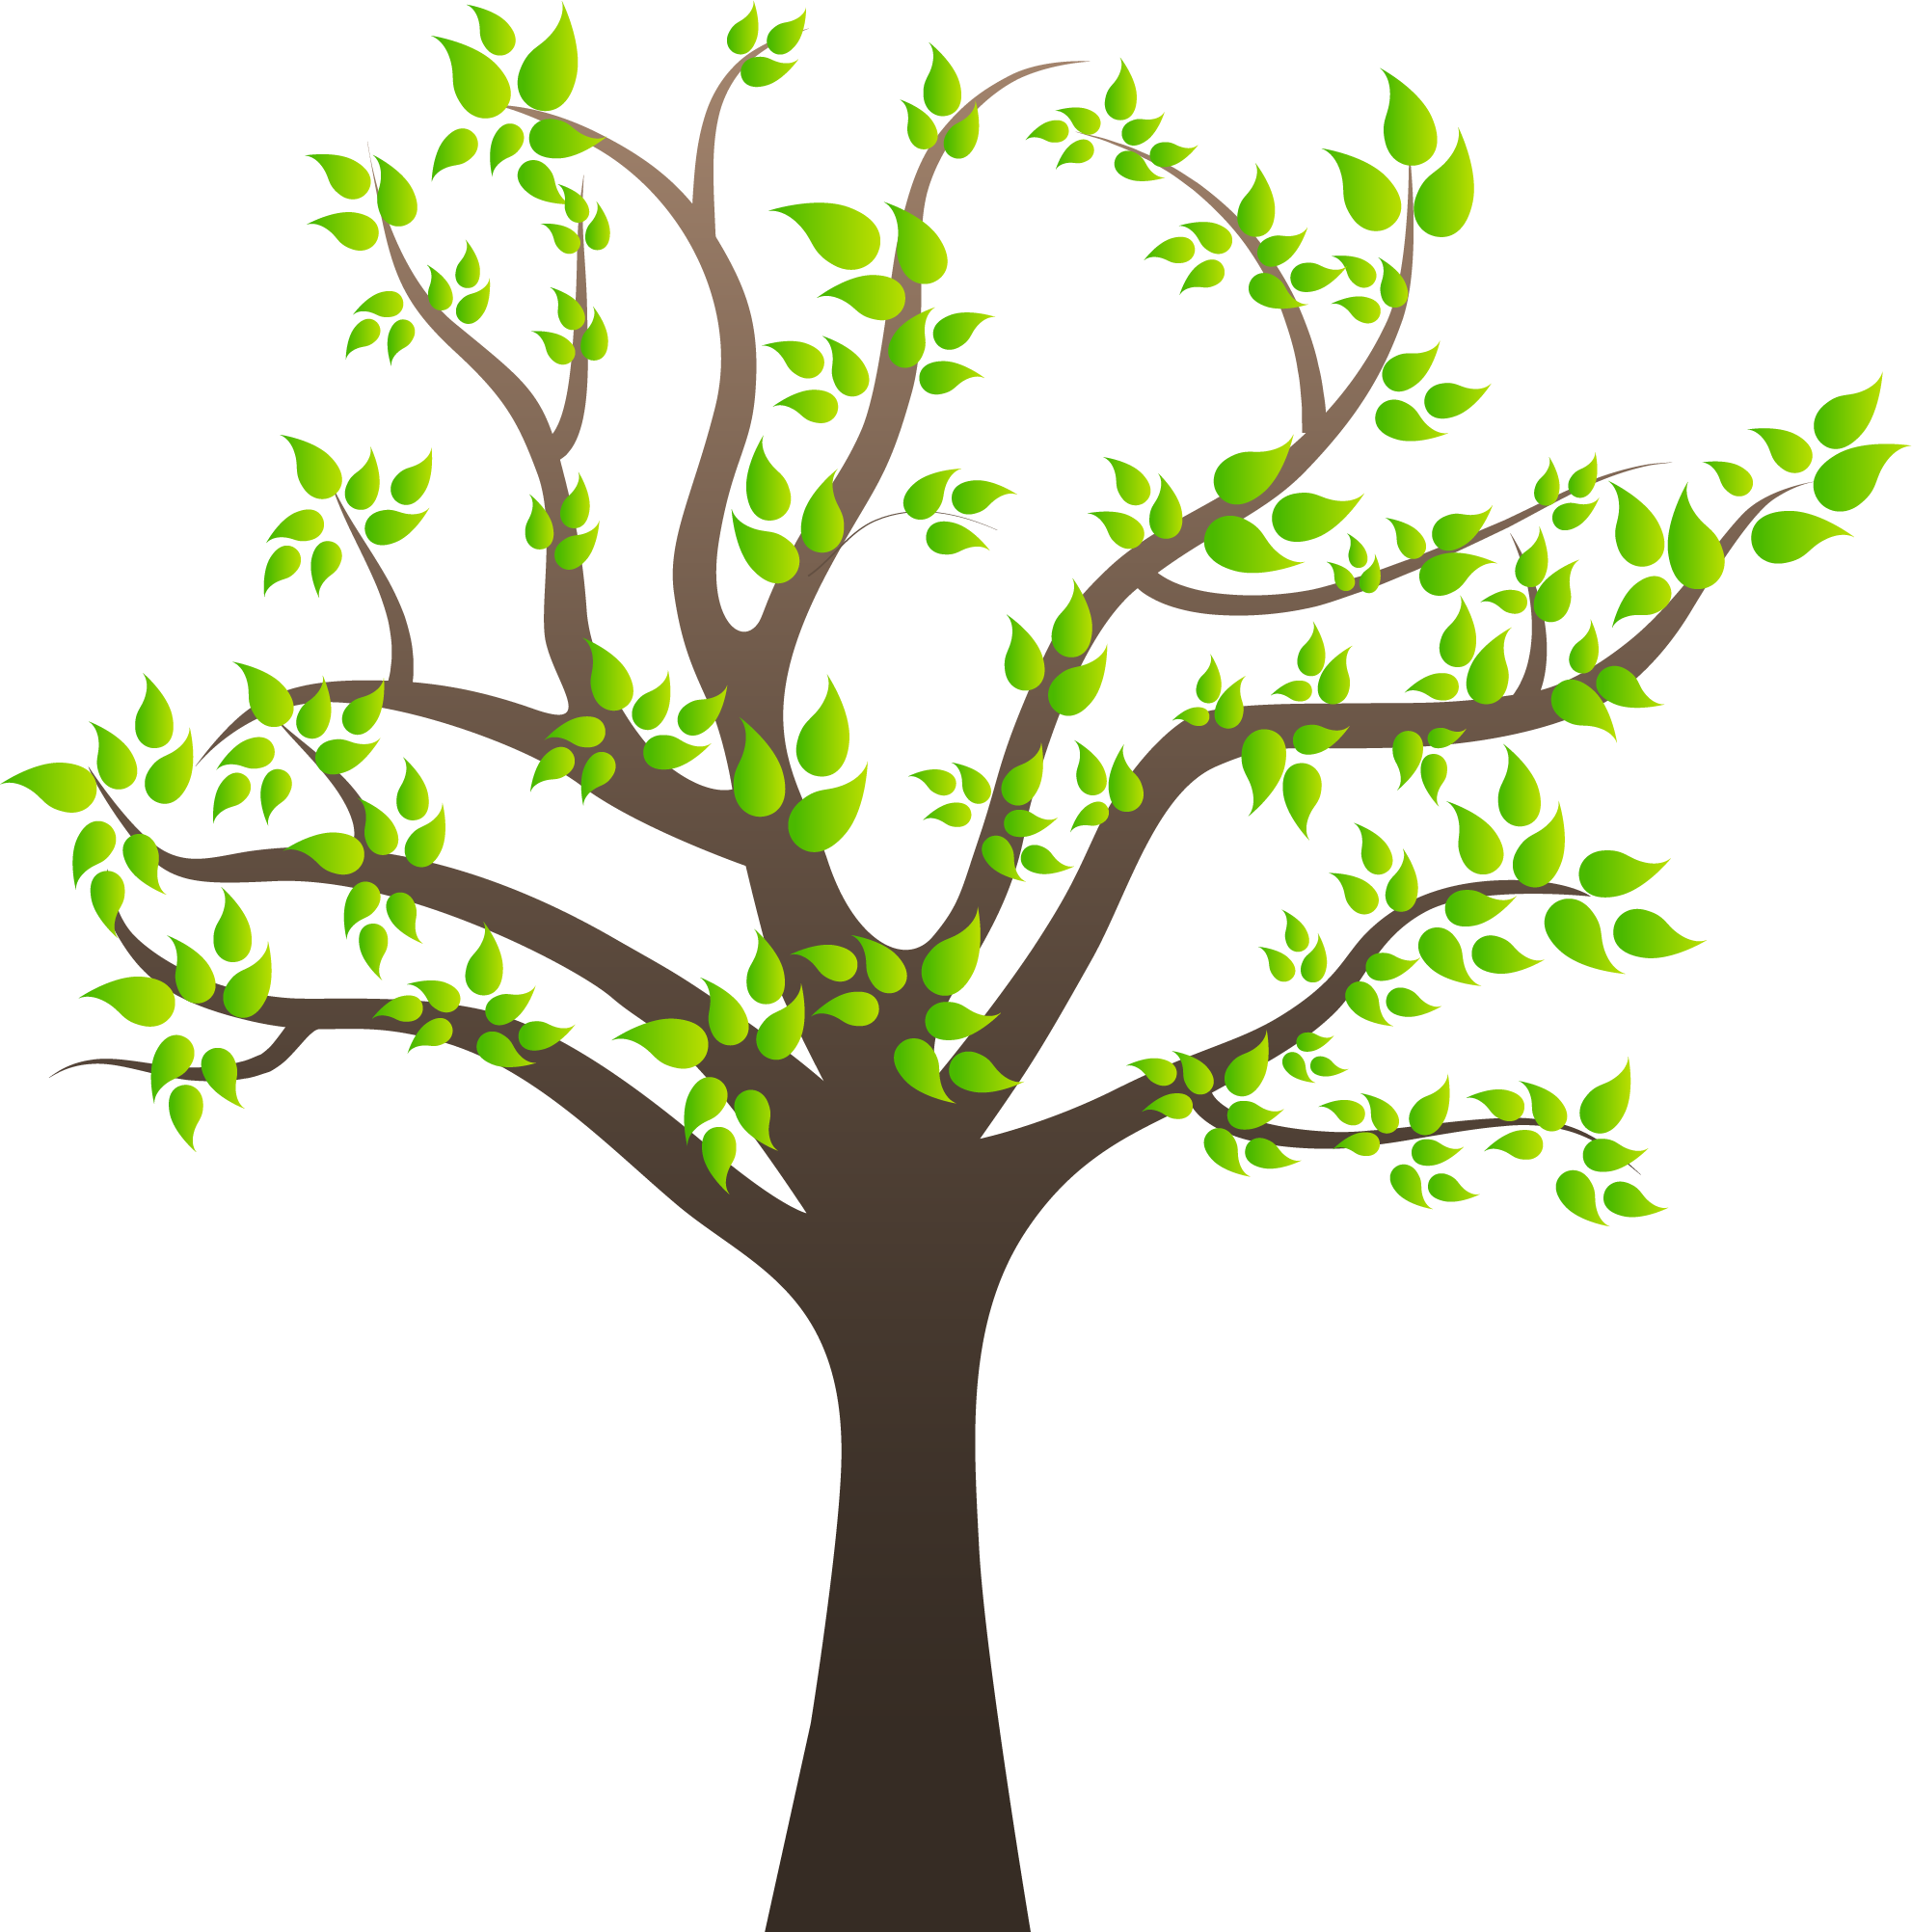 Tree clipart social media. Png images quality transparent